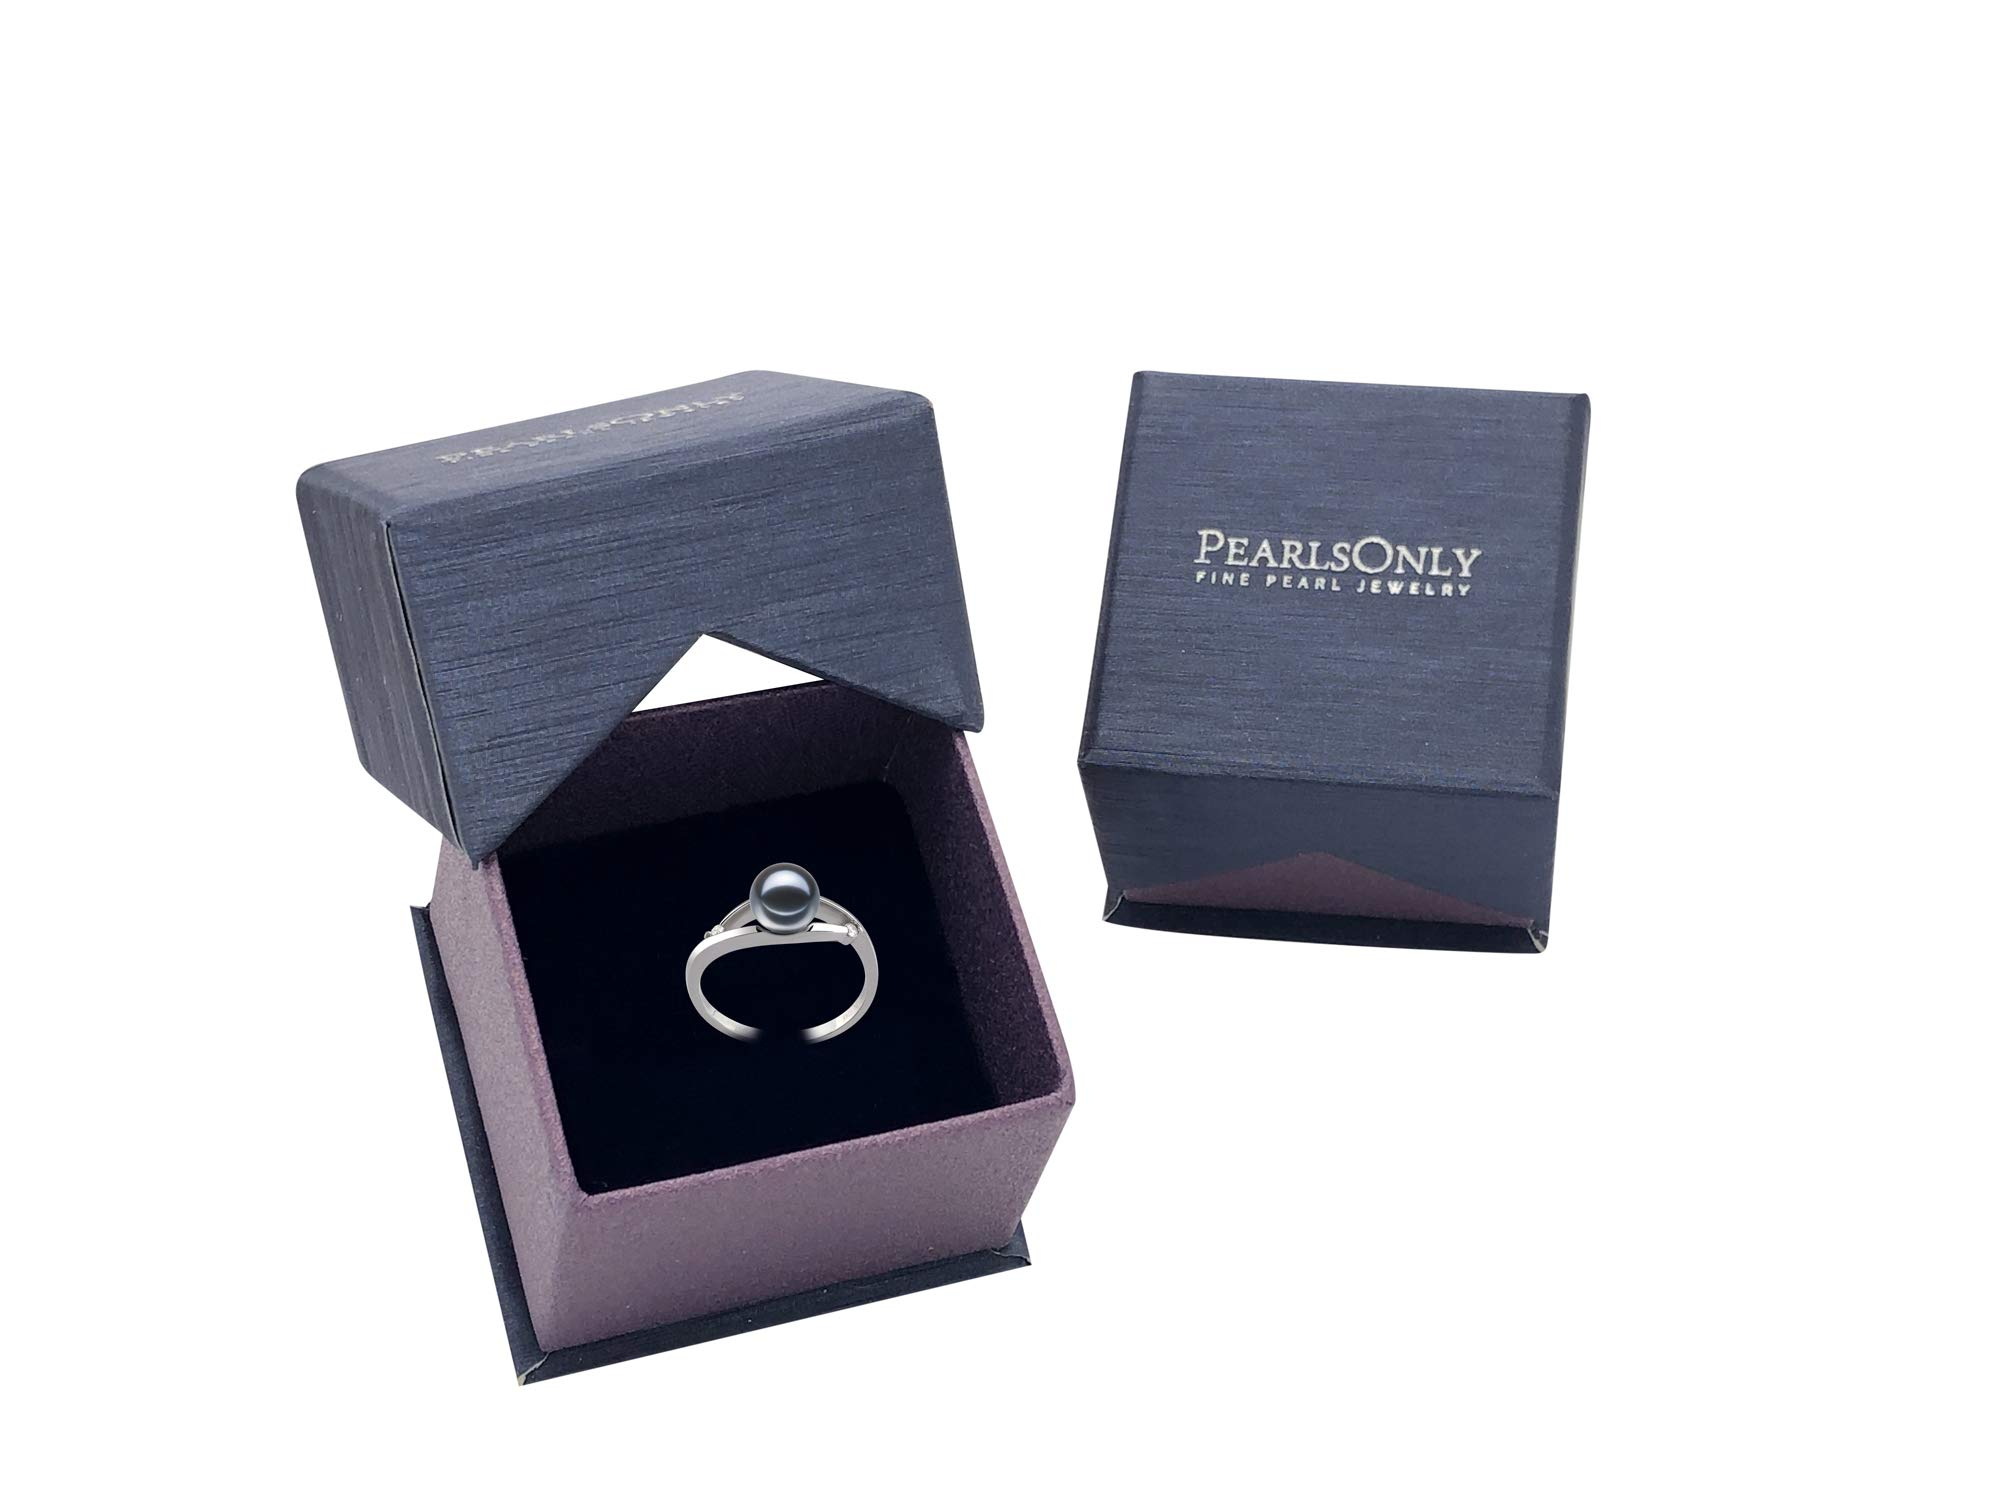 Tanya Black 6-7mm AAAA Quality Freshwater 14K White Gold Cultured Pearl Ring For Women - Size-7 by PearlsOnly (Image #6)